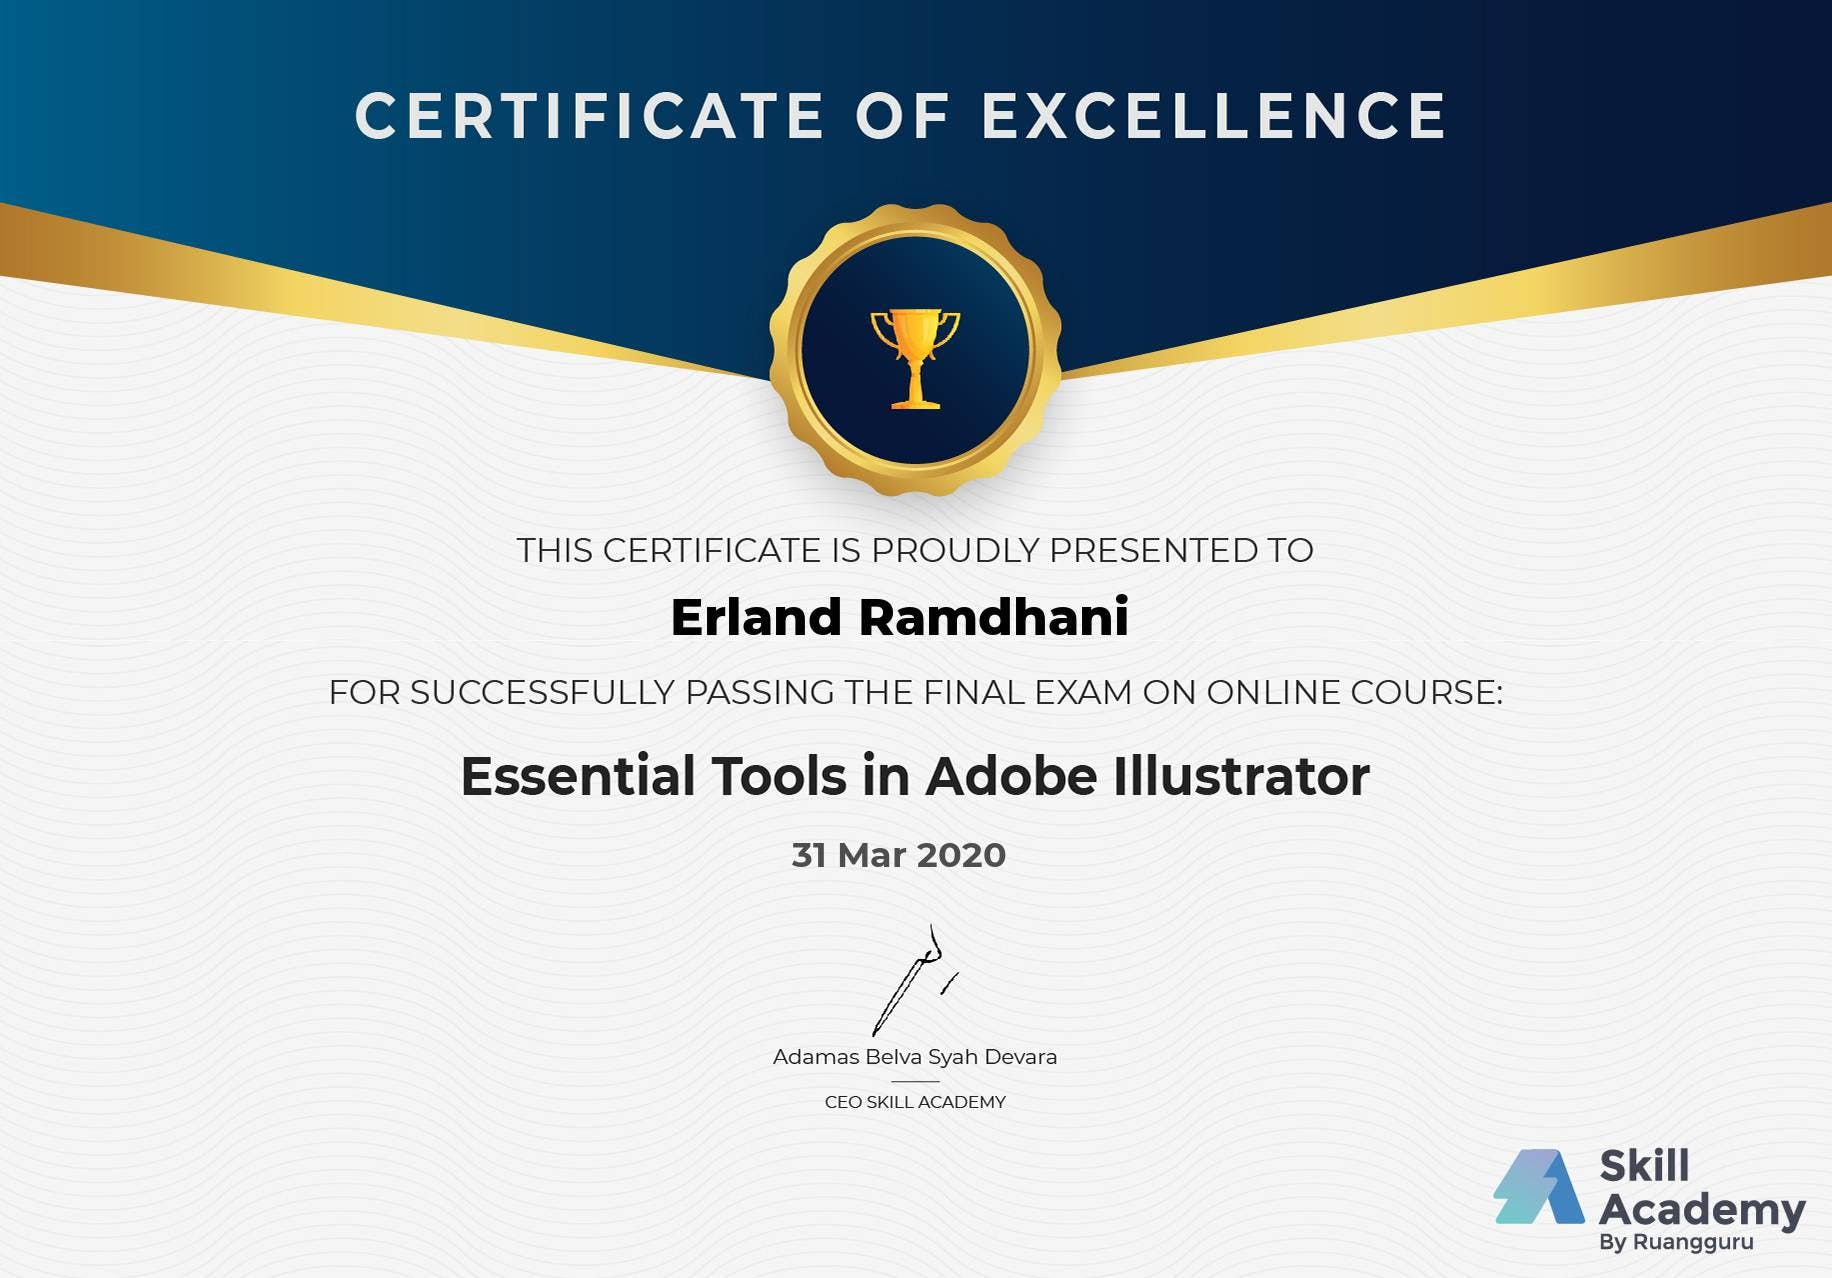 Essential Tools in Adobe Illustrator Certificate